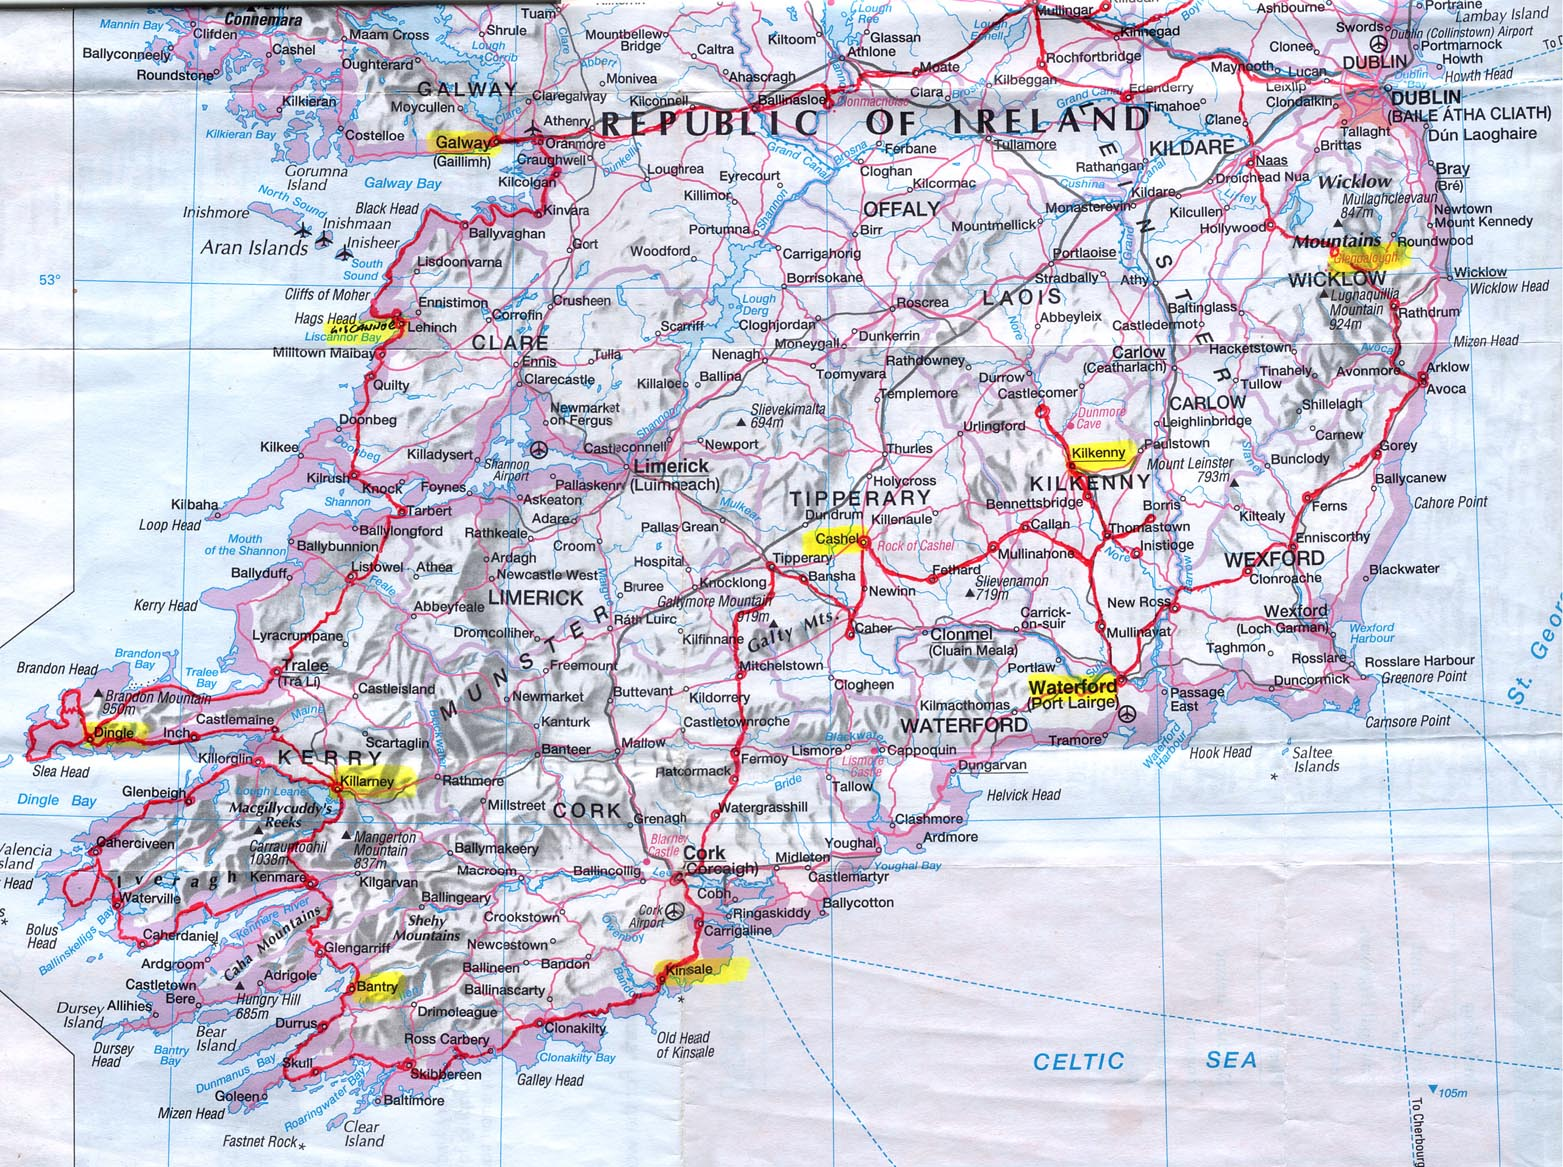 South Of Ireland Map.South Ireland Map